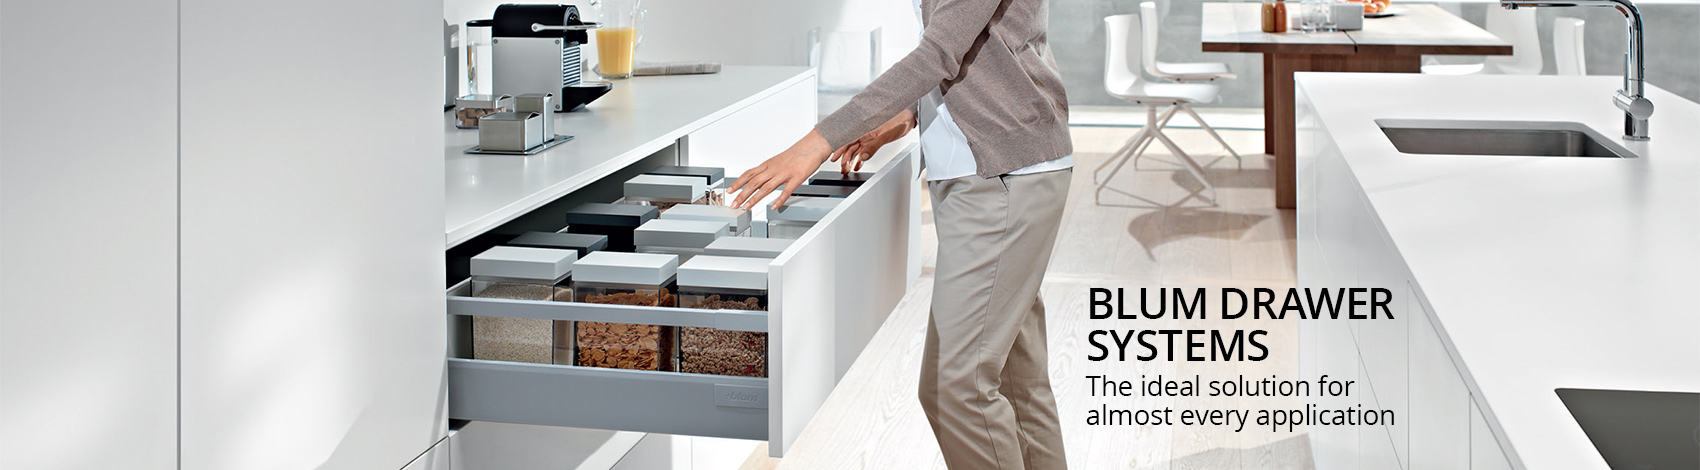 Blum Drawer Systems